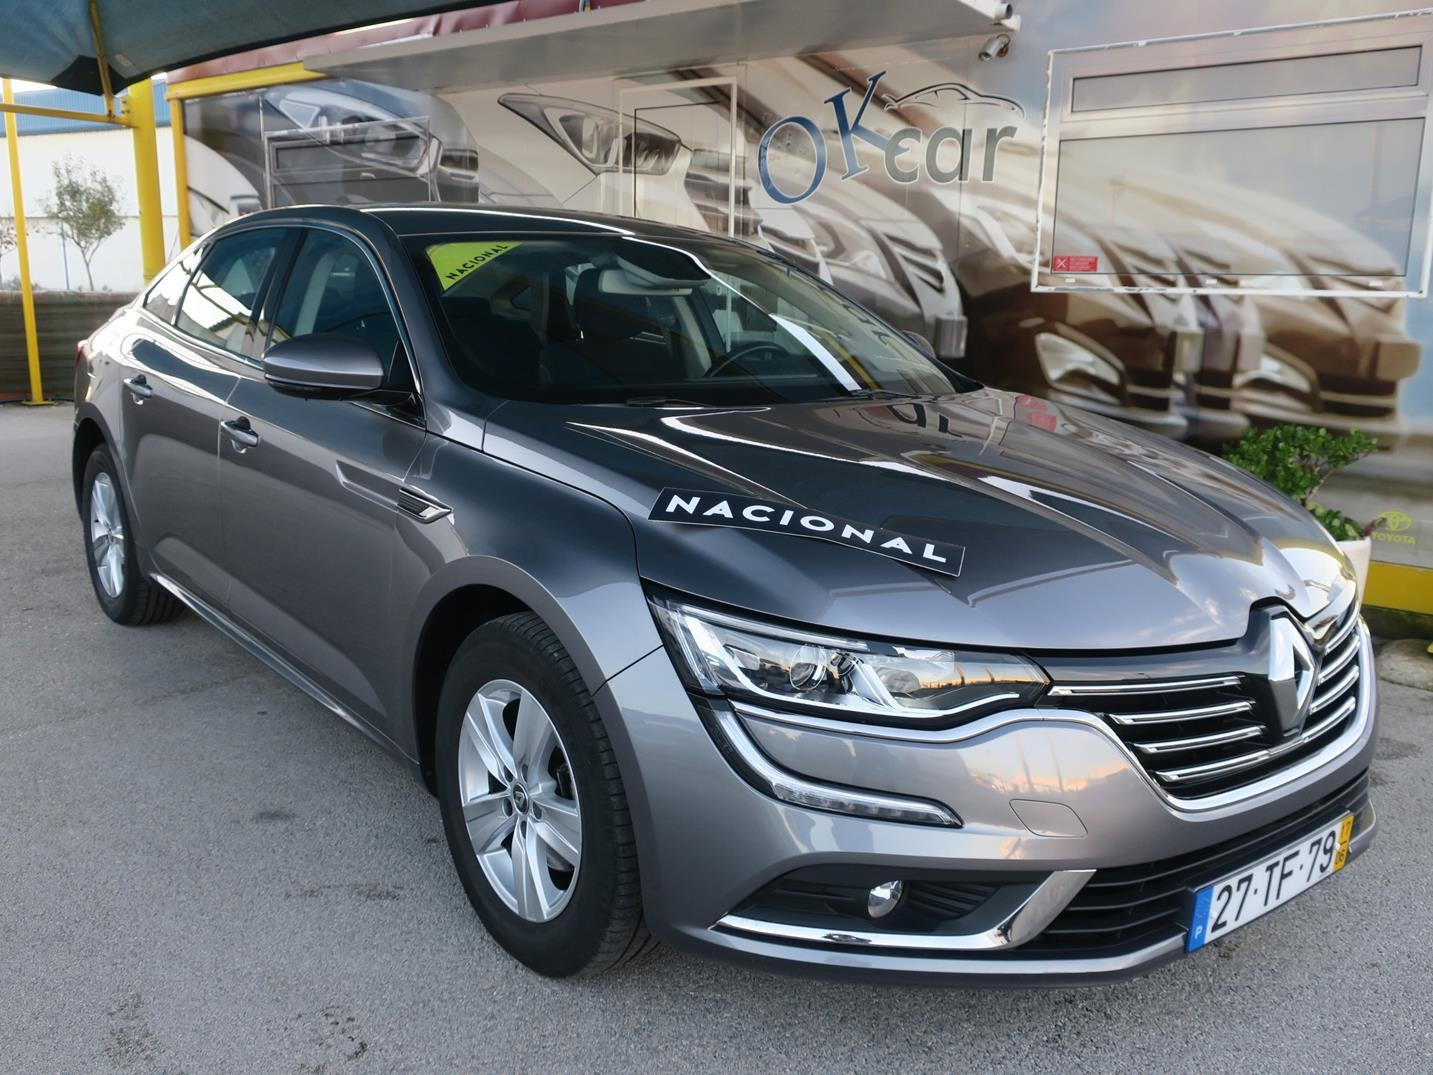 Renault Talisman Sedan 1.5 dCi Zen Pack Business